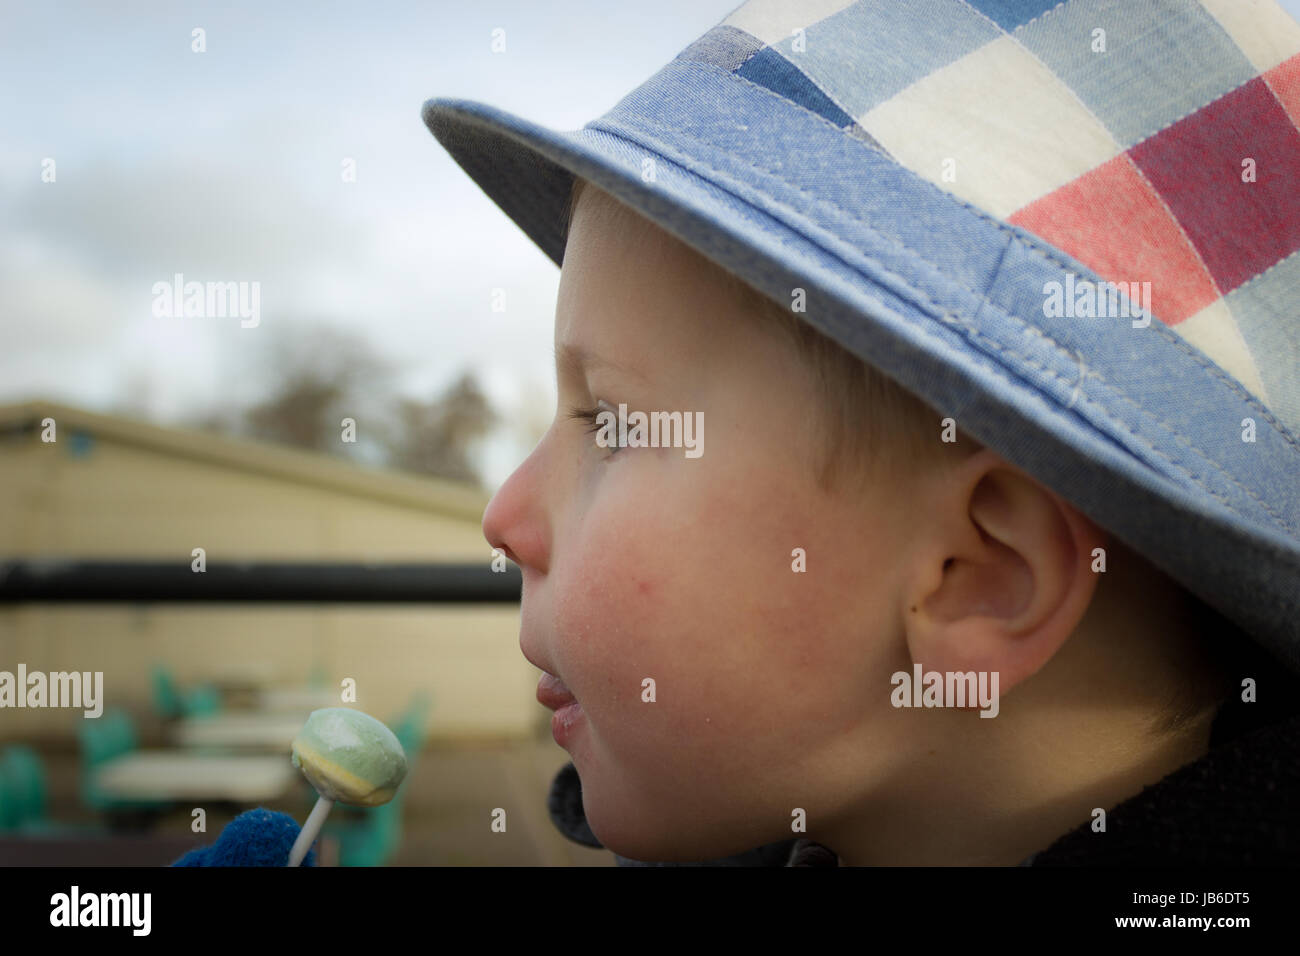 Small boy eating a lollipop - Stock Image